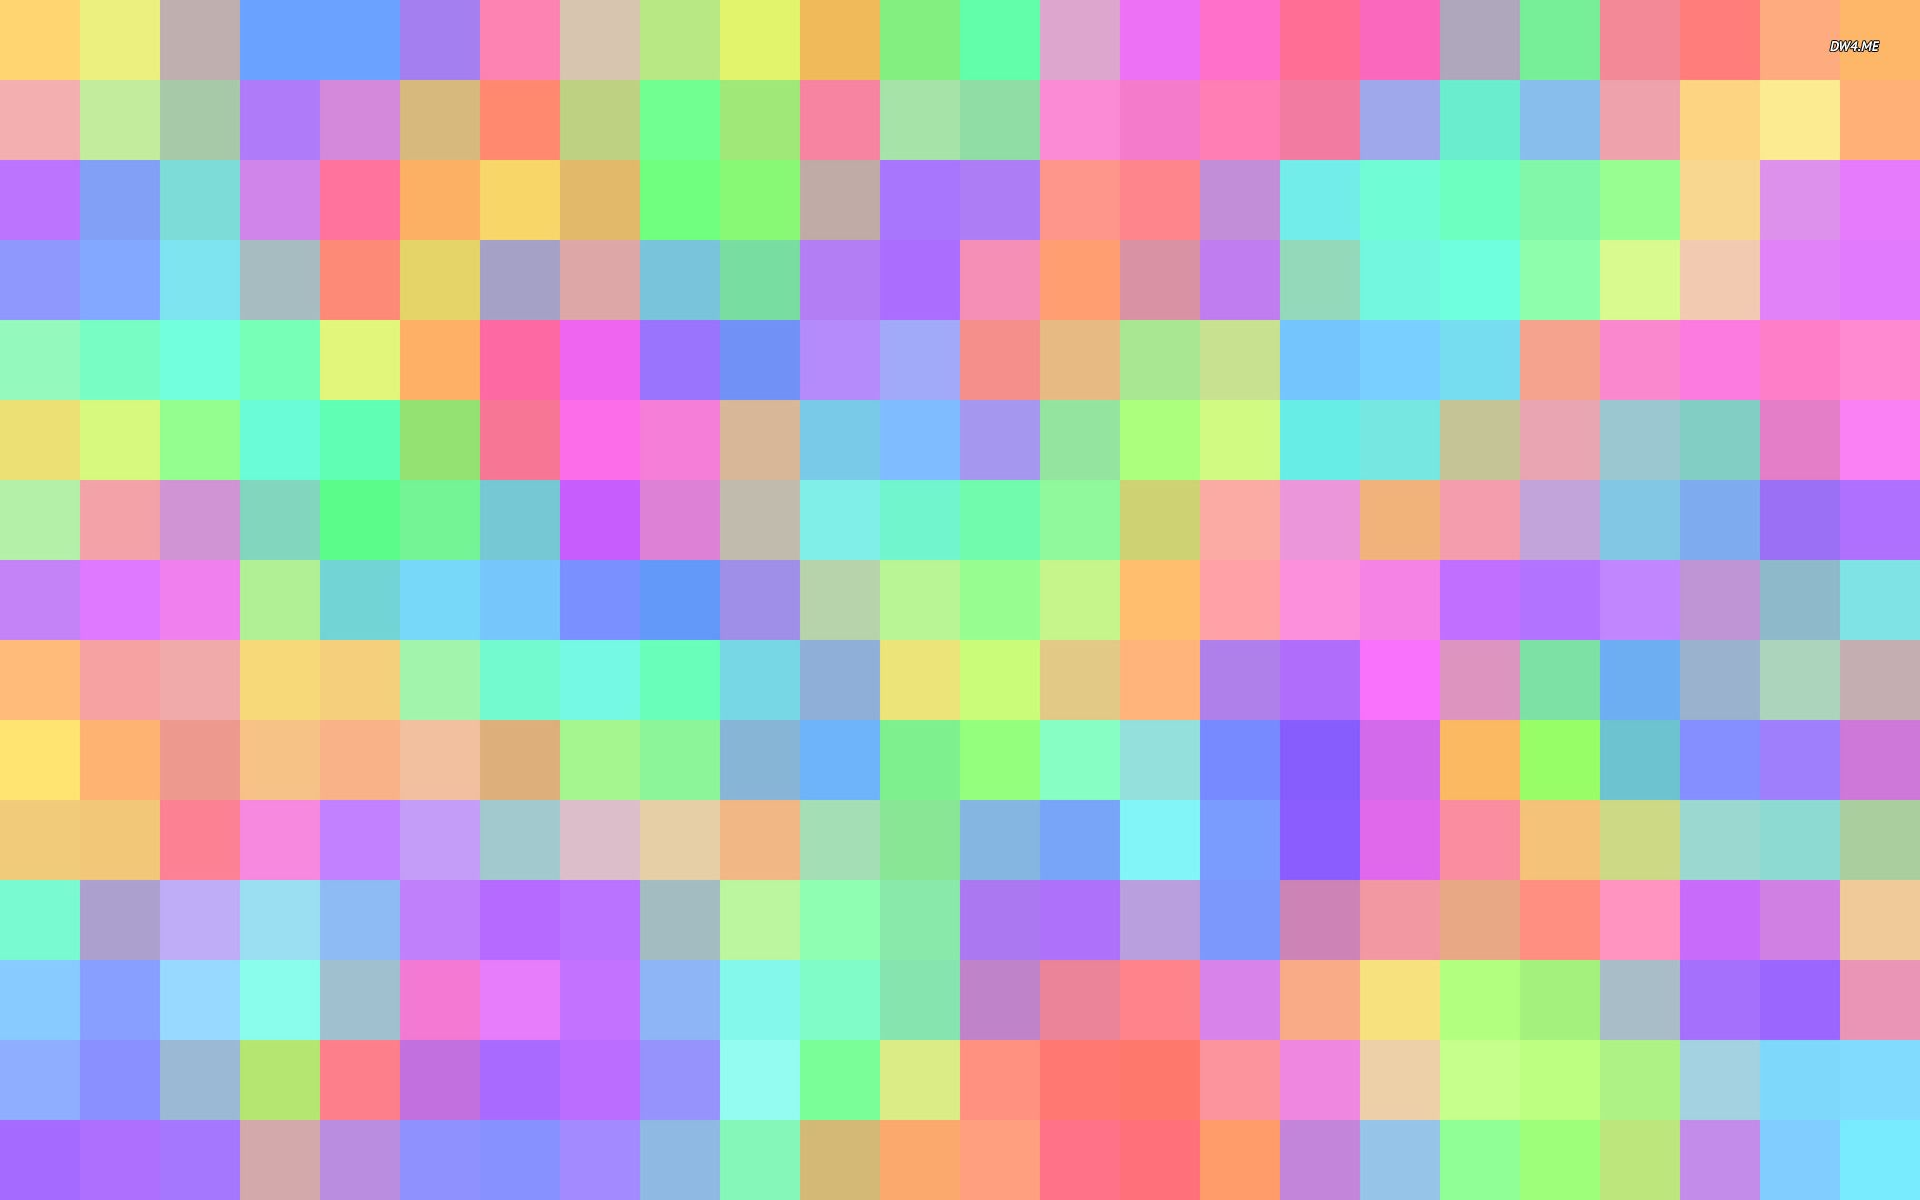 Simple Colorful Patterns Tumblr Google Search With Design Inspiration